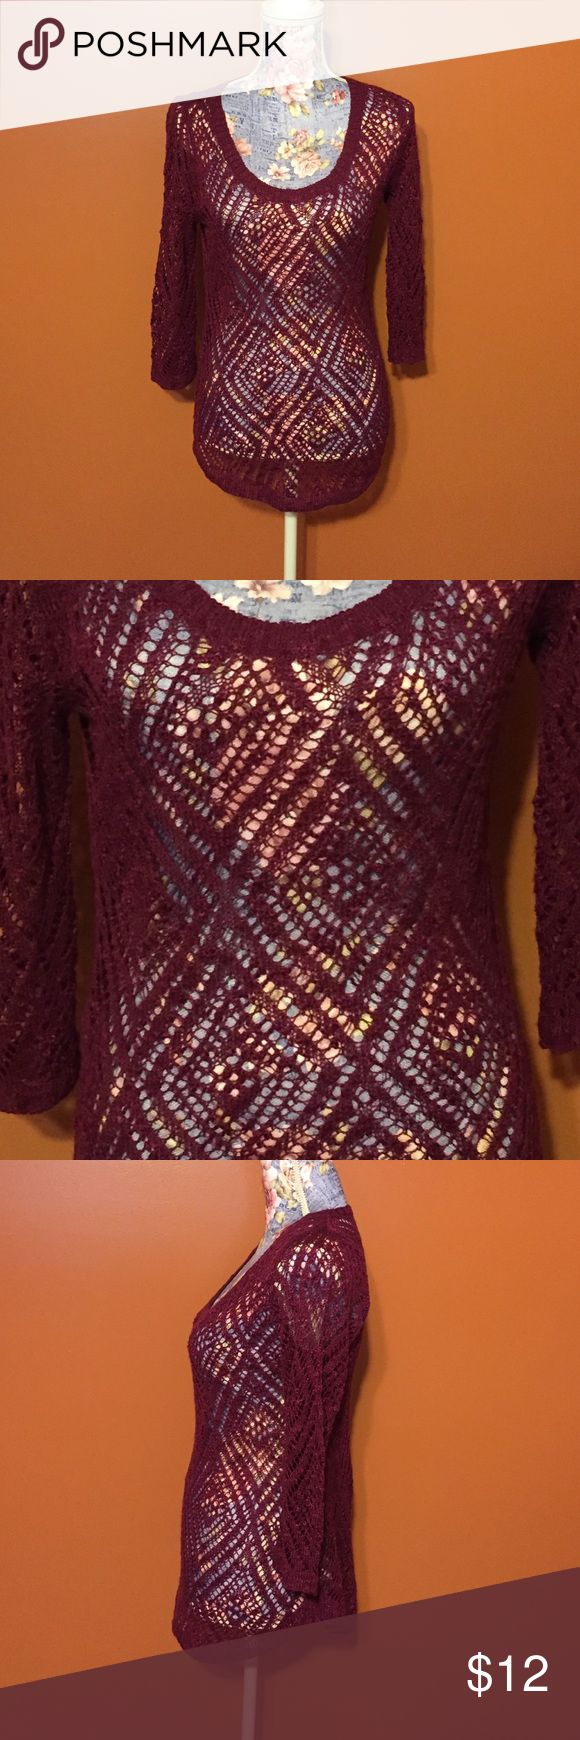 3/4 length layering shirt size Small. Cute layer shirt in a wine color. Size Small. From Maurices in excellent condition. Maurices Tops Tees - Short Sleeve